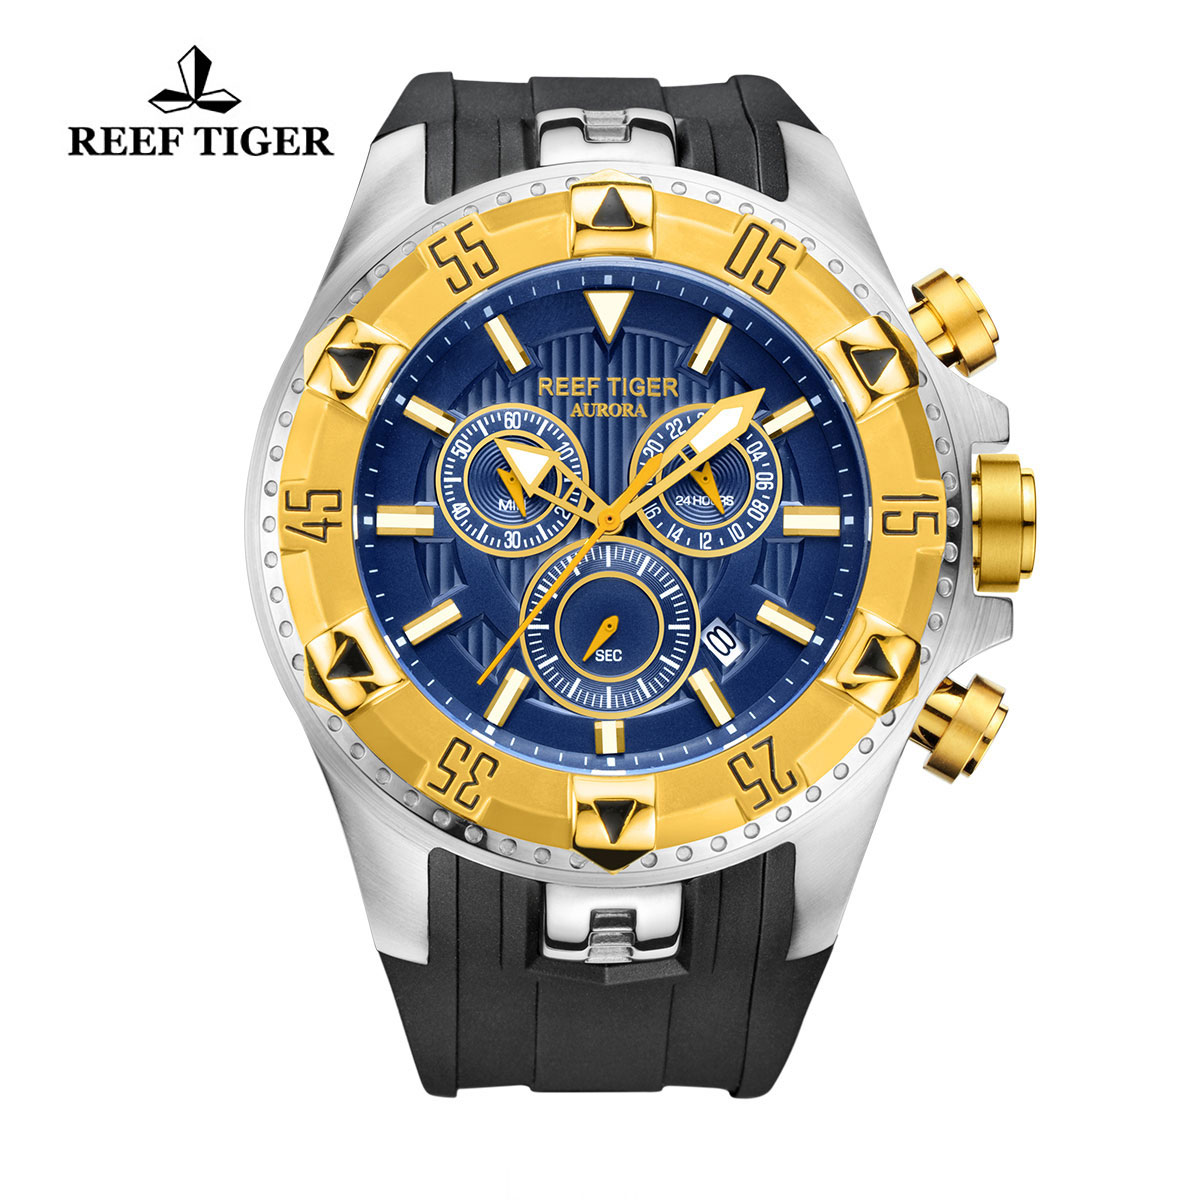 Reef Tiger Hercules Sport Watches Chronograph Steel Case Yellow Gold Bezel Blue Dial Watch RGA303-GLB